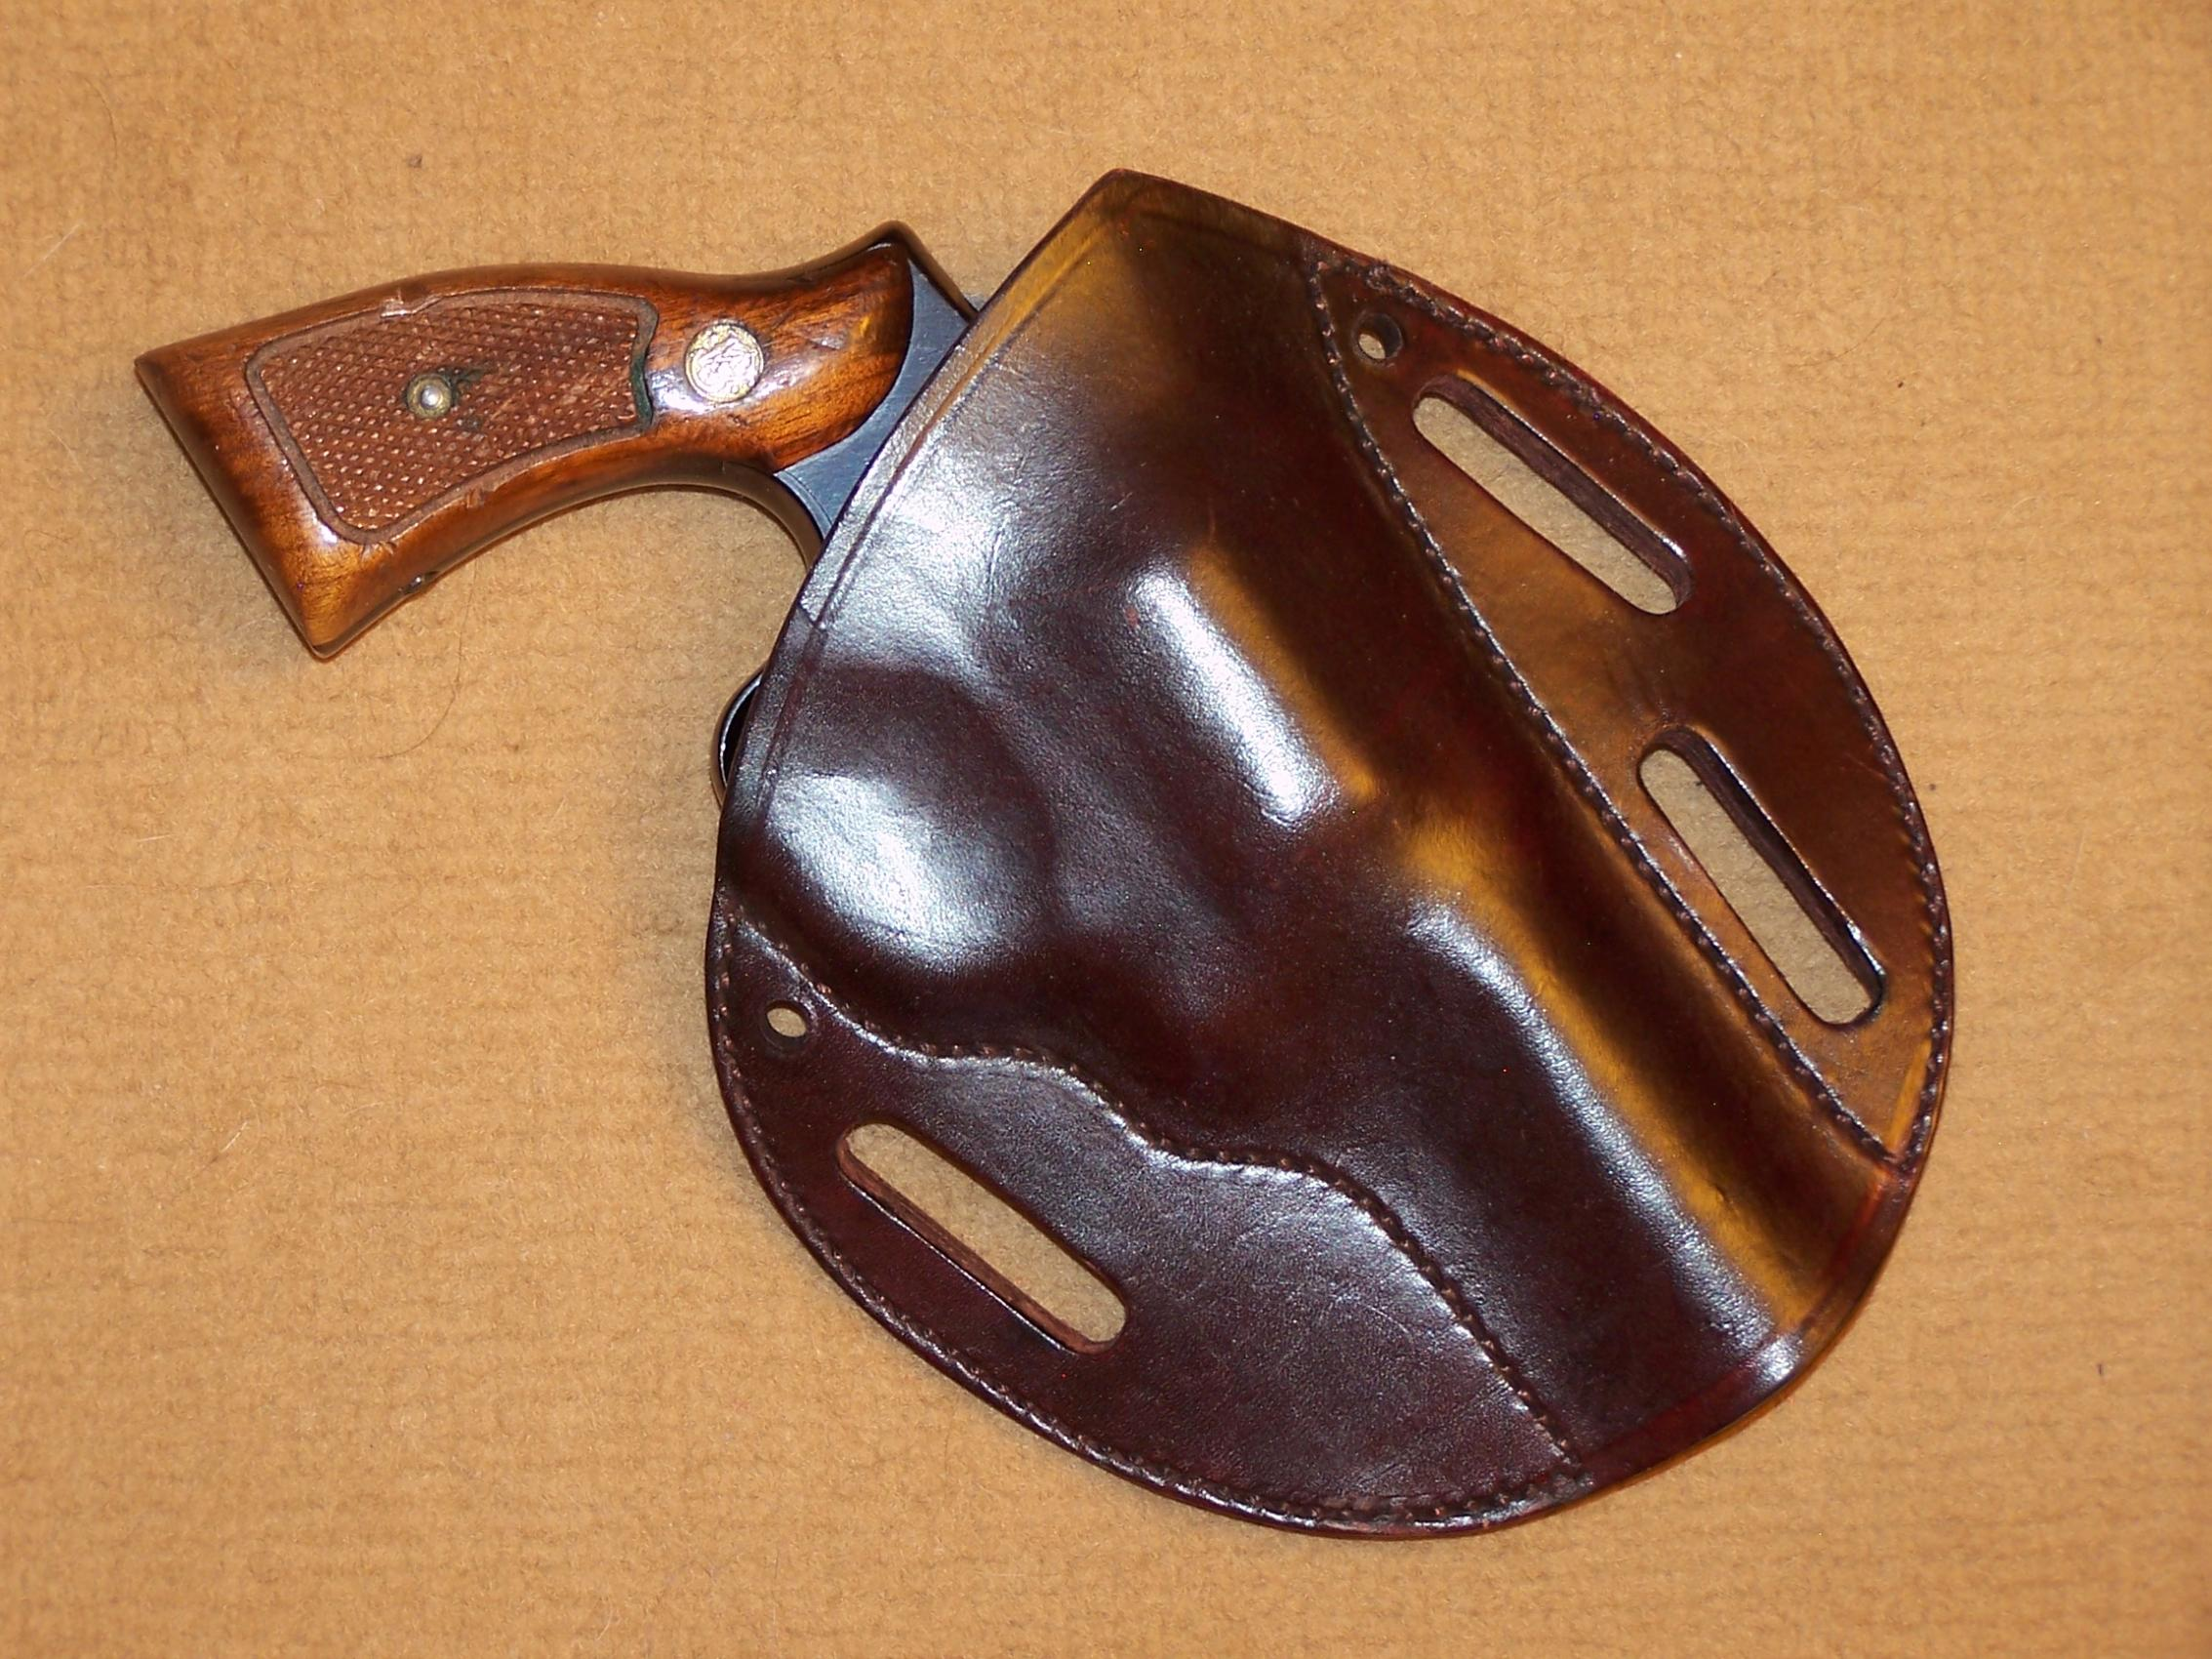 question about simply ruggeds silver dollar pancake holster-013.jpg